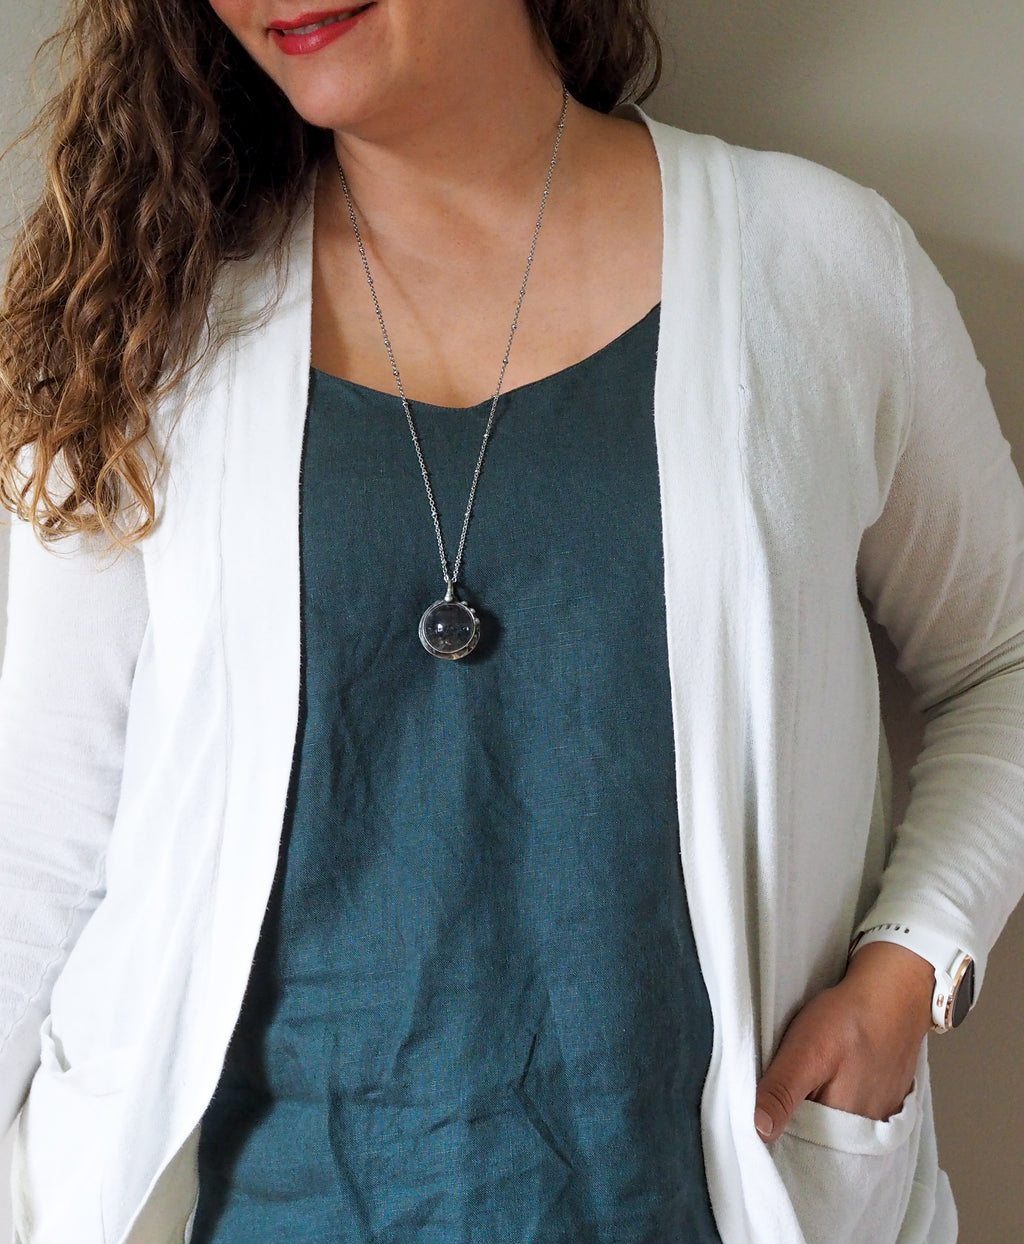 healing crystal orb crystal talisman necklace on woman in blue top